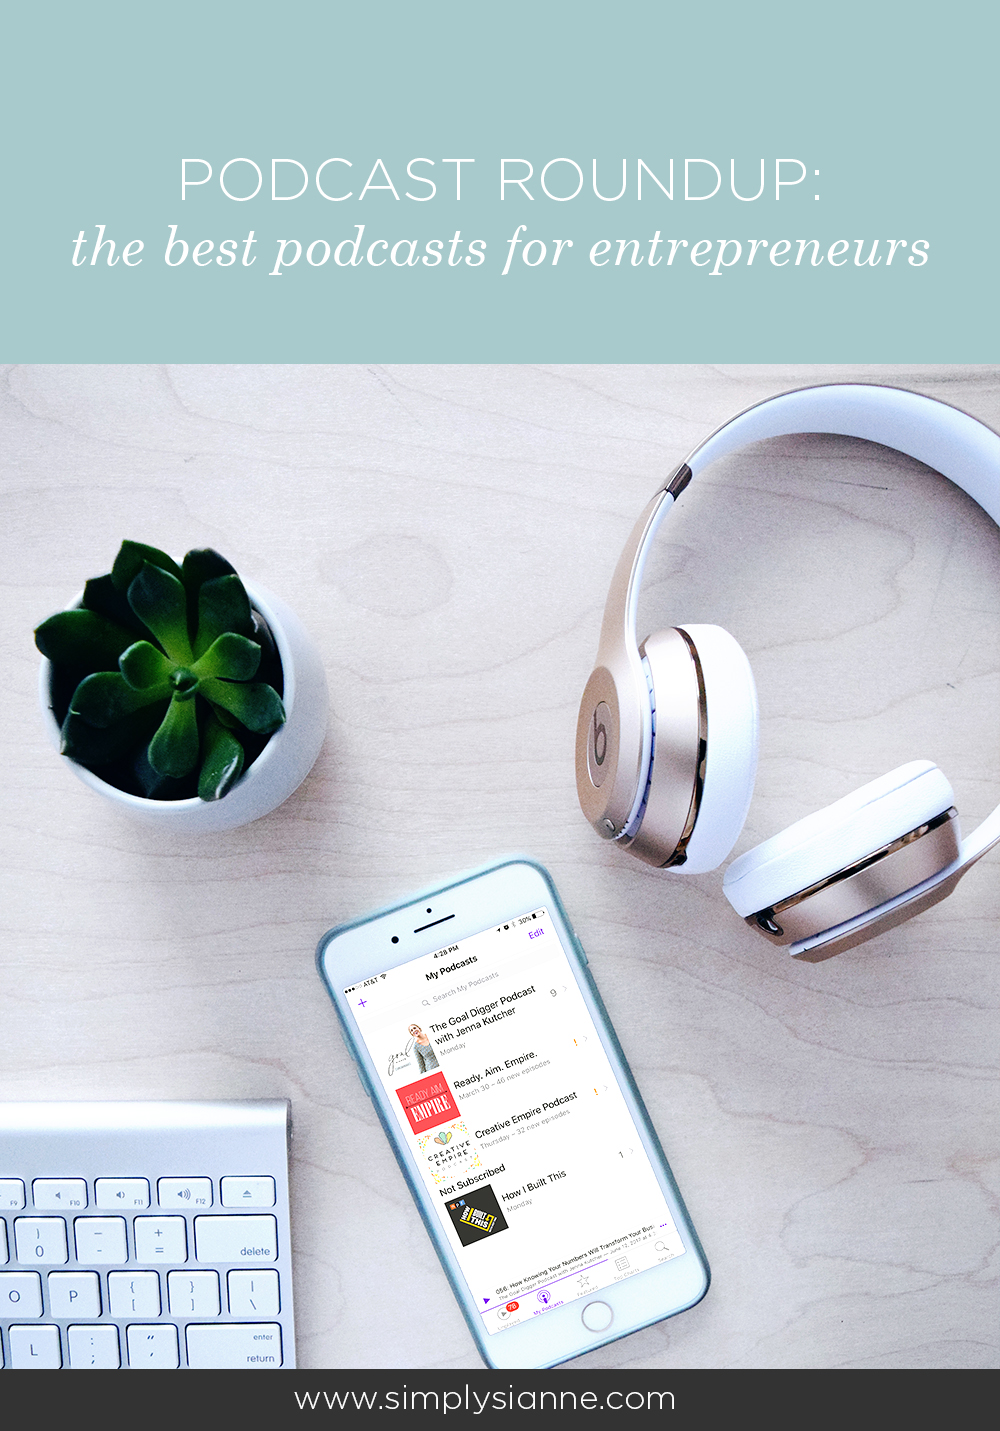 A round of up of the best podcasts for entrepreneurs